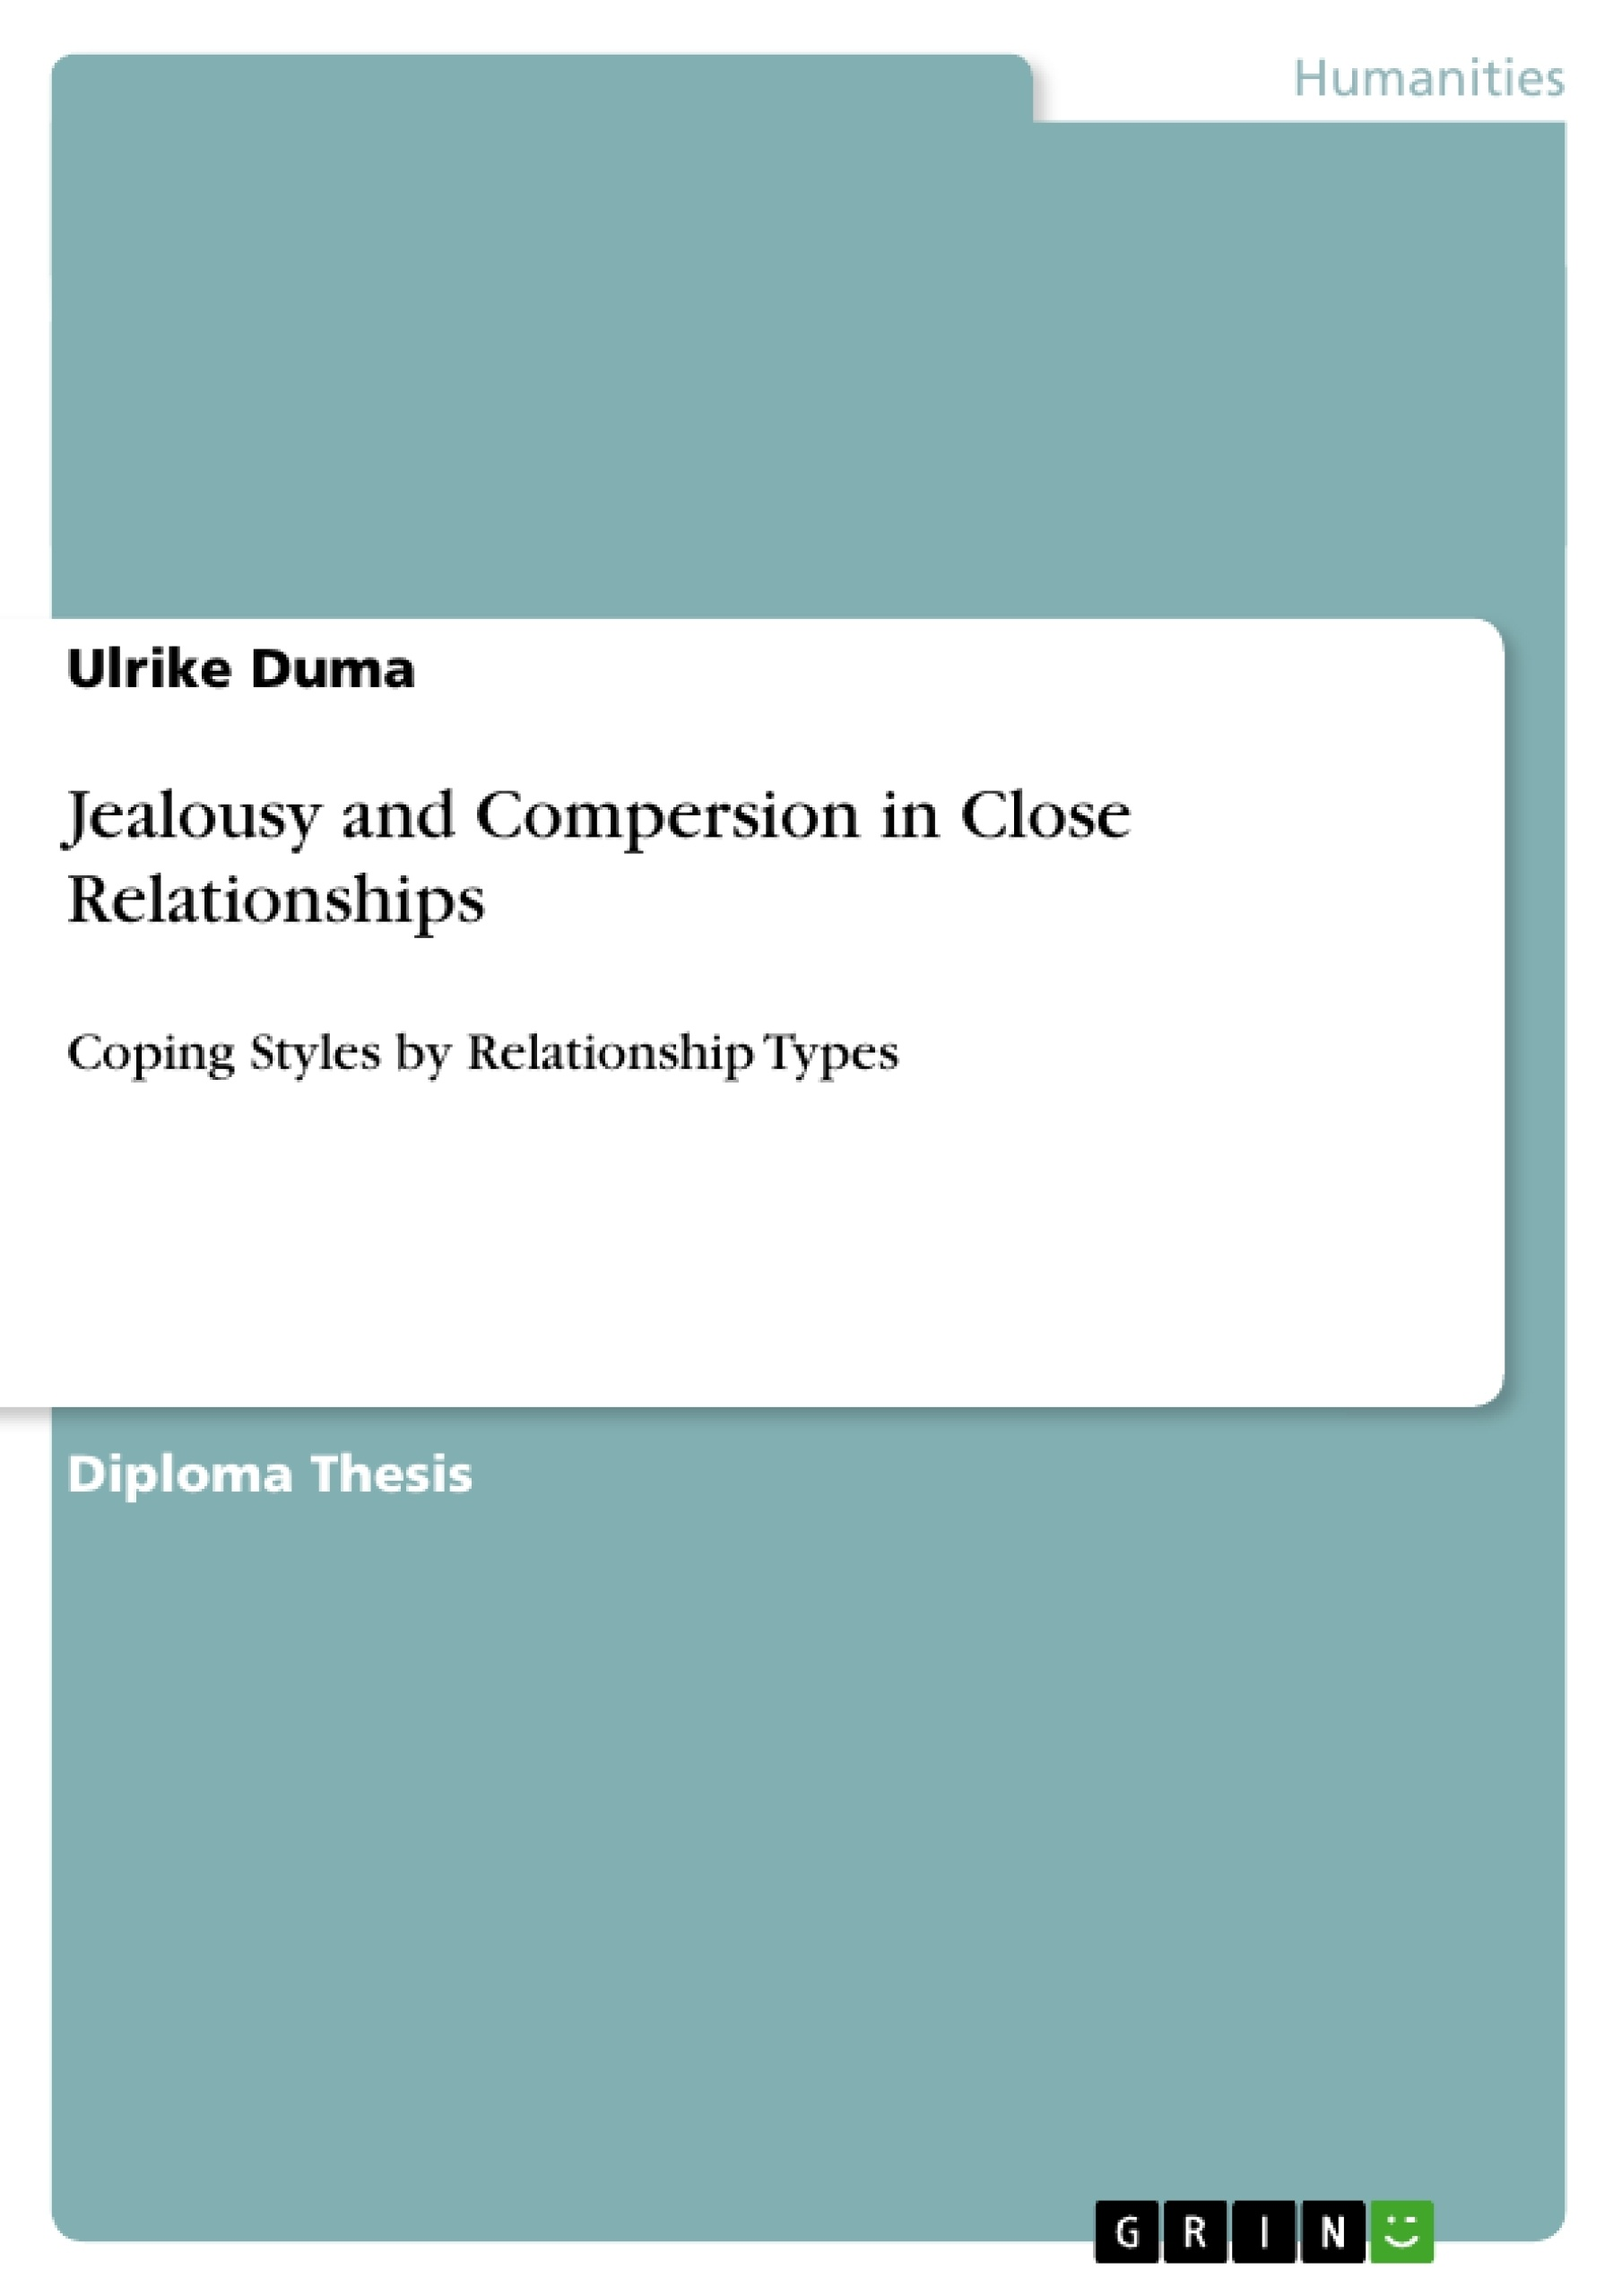 Title: Jealousy and Compersion in Close Relationships